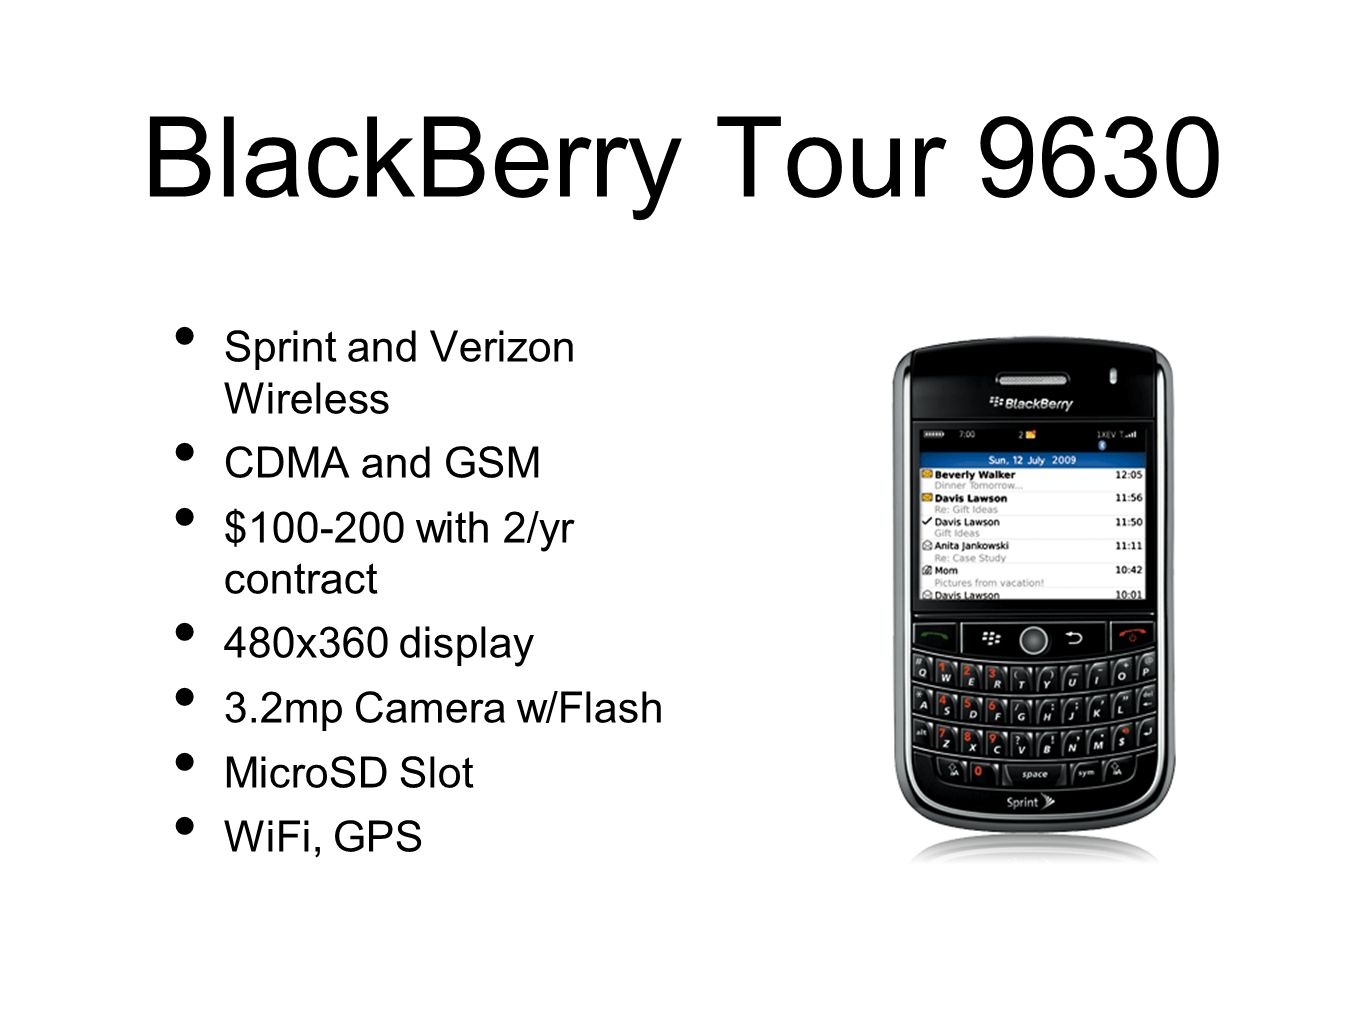 BlackBerry Tour 9630 Sprint and Verizon Wireless CDMA and GSM $100-200 with 2/yr contract 480x360 display 3.2mp Camera w/Flash MicroSD Slot WiFi, GPS